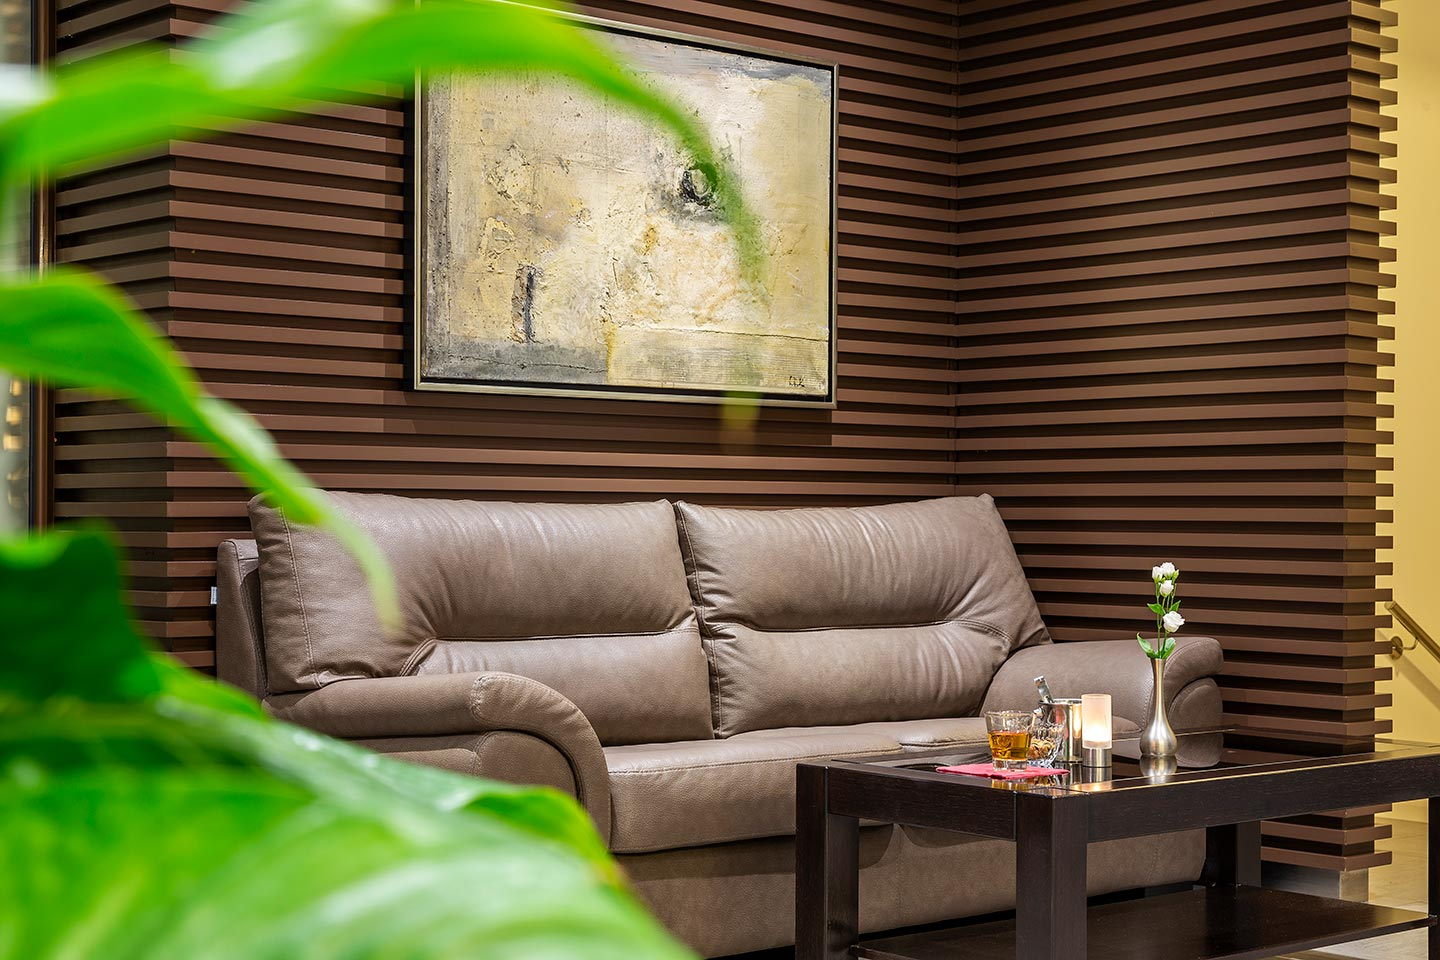 Relax your senses in a stylish and cozy atmosphere